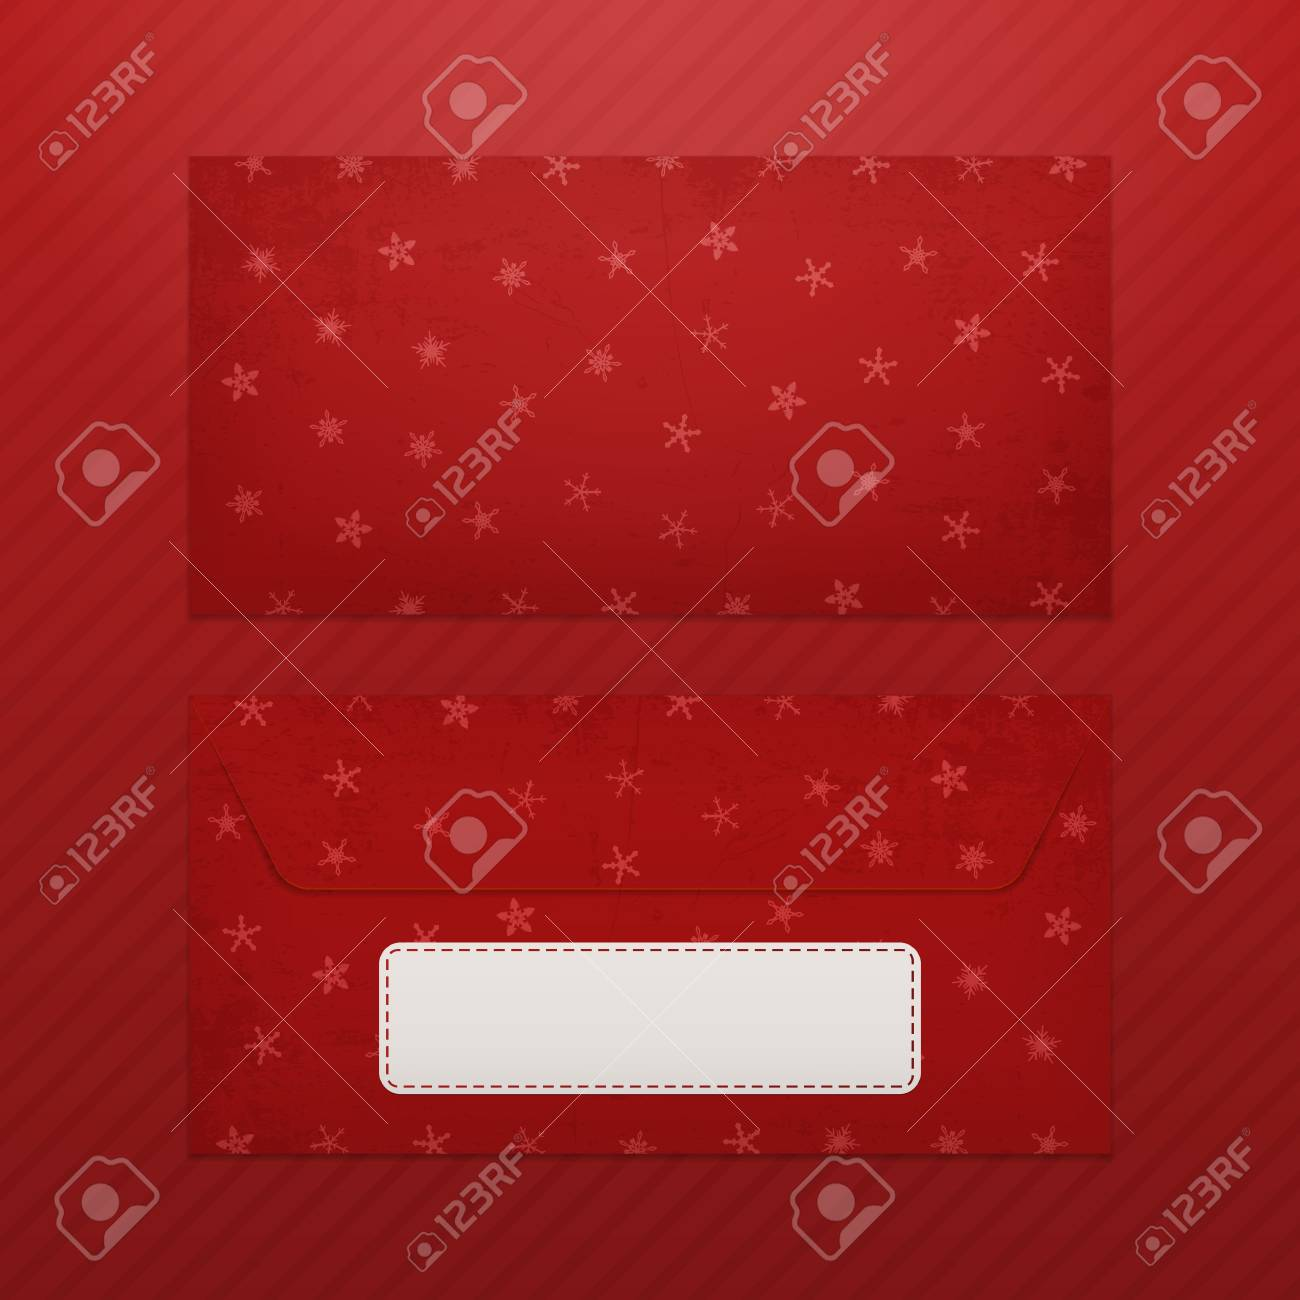 Realistic Christmas Blank Envelope Template For Santa With ...